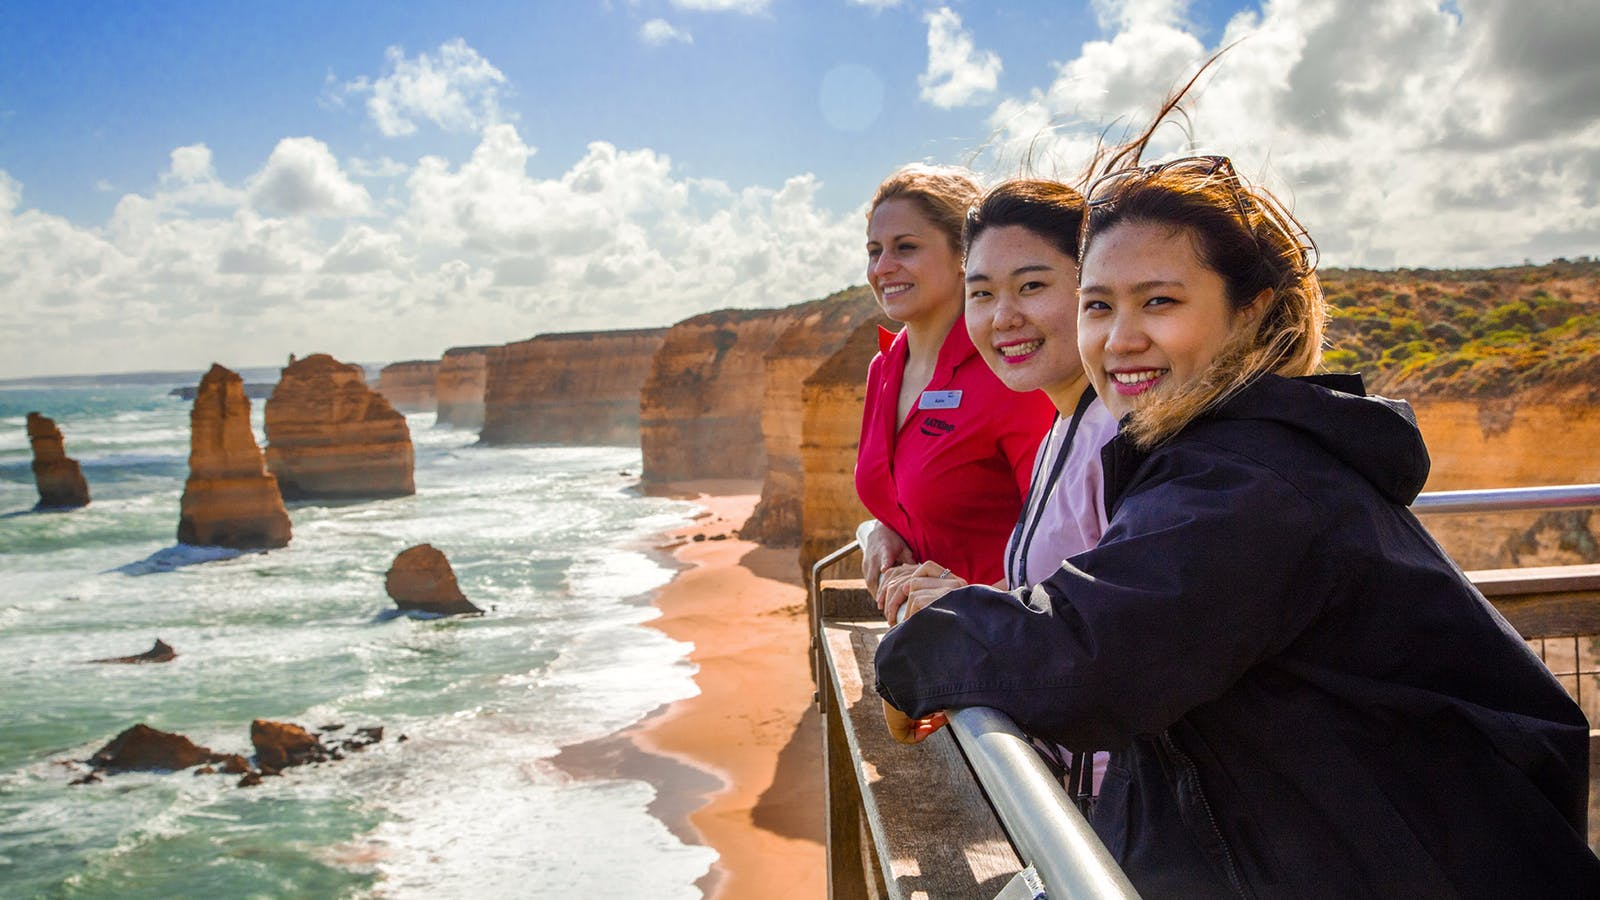 AAT Kings guide and guest at the Twelve Apostles